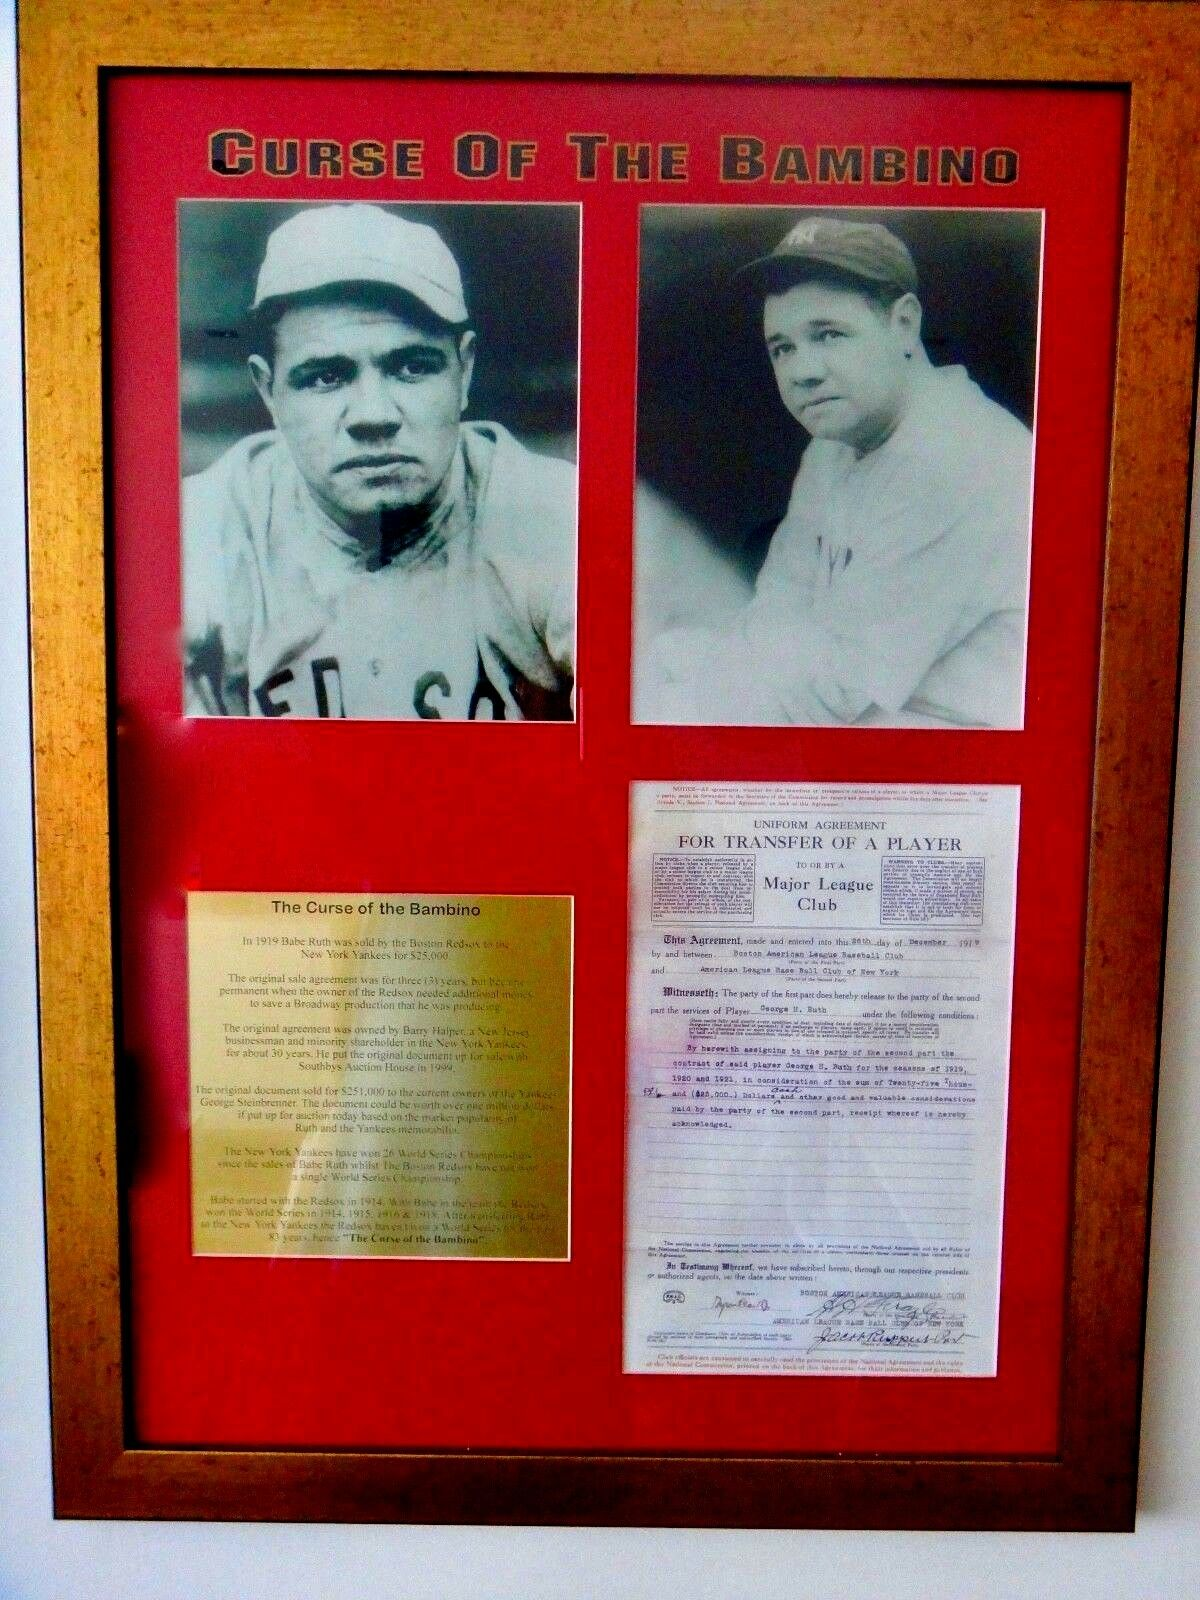 Babe Ruth - Agreement/Curse of the Bambino Story Plaque – Frame 60 x 80 x 5cm